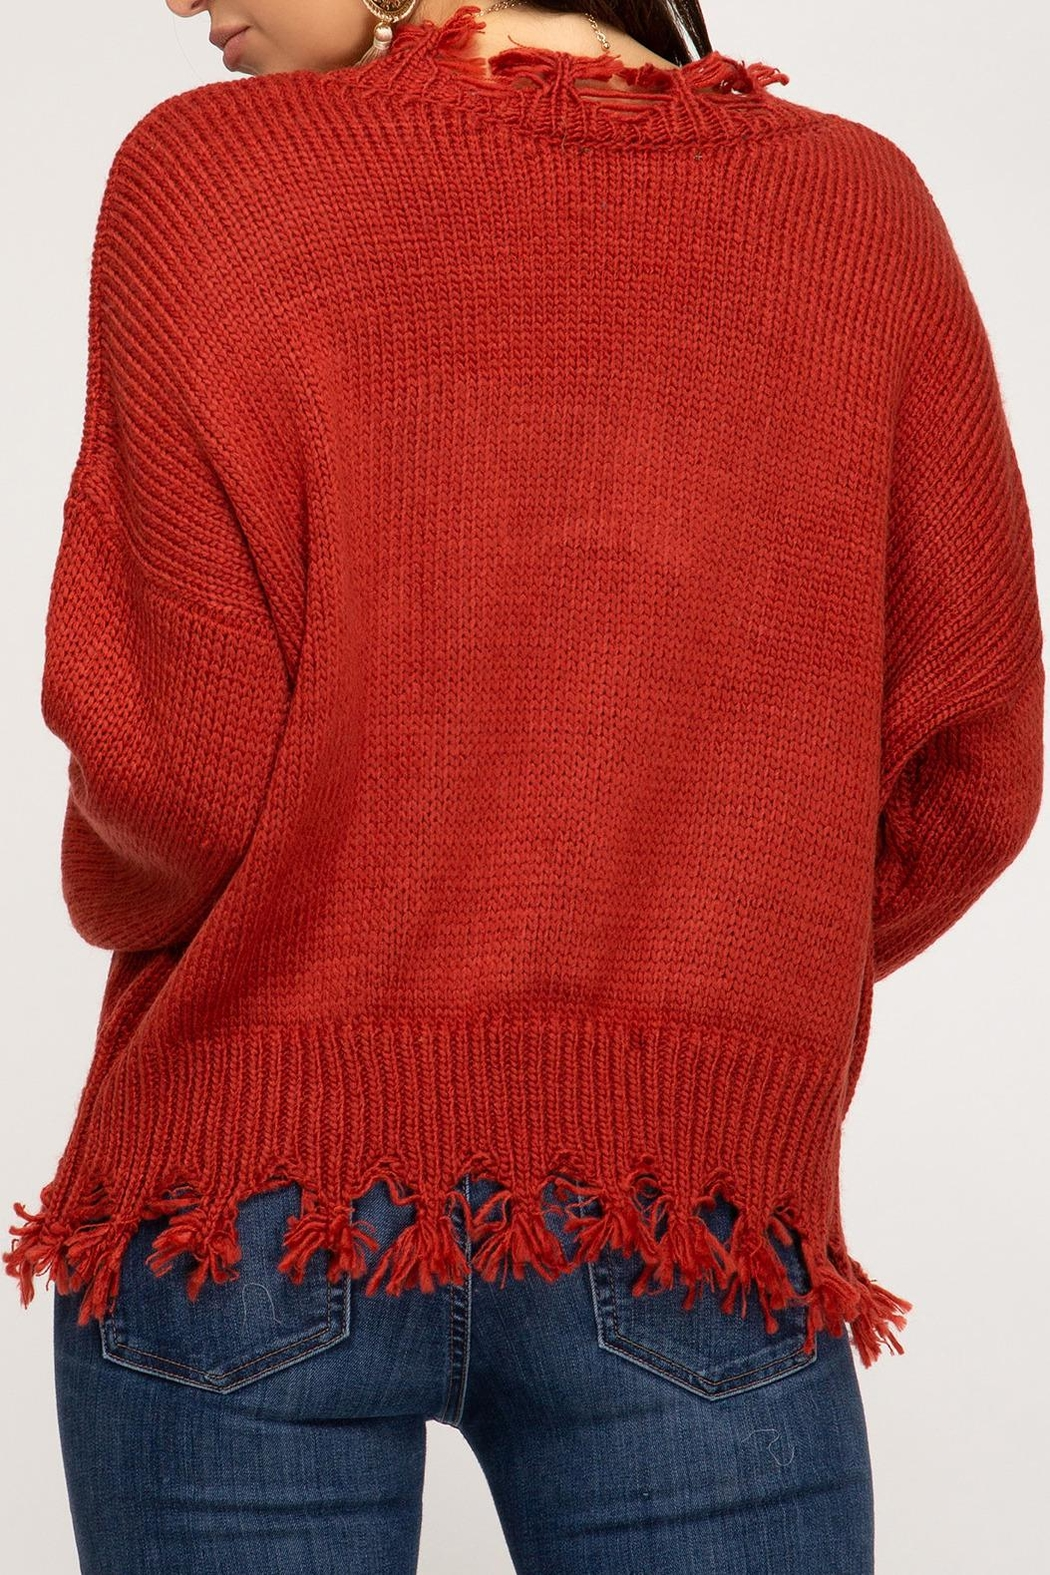 She + Sky Distressed V-Neck Sweater - Front Full Image